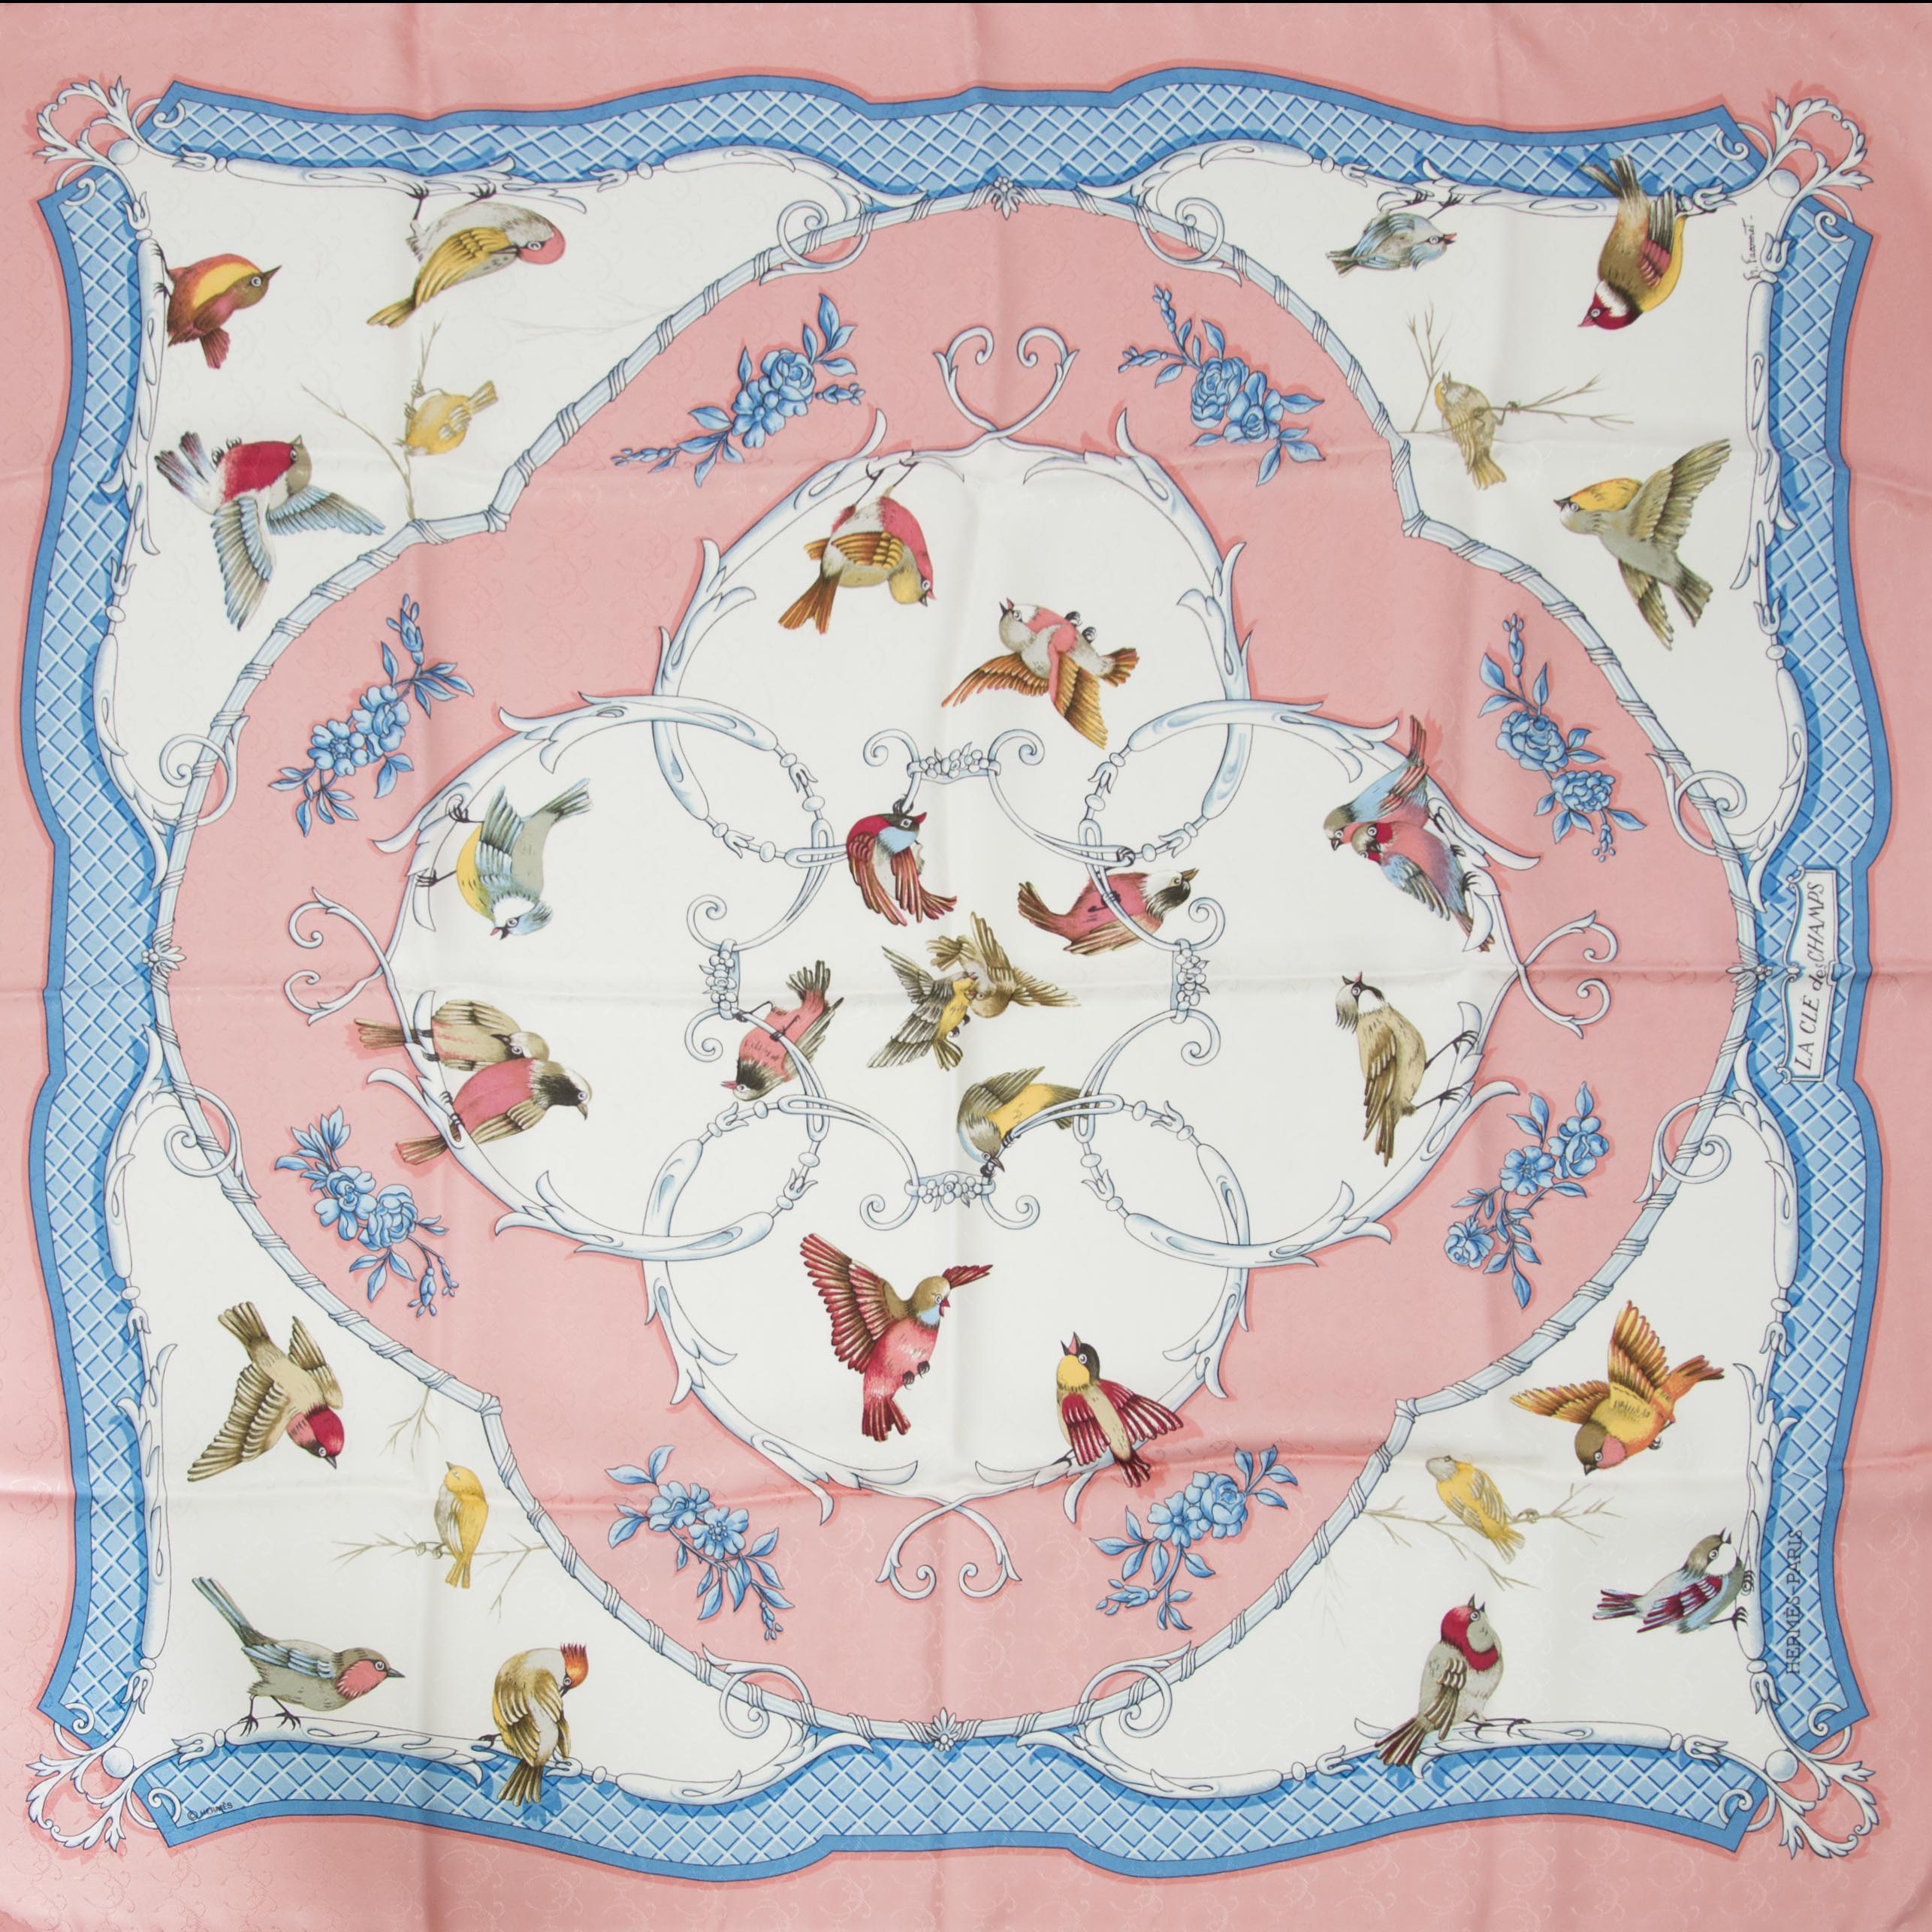 Authentic secondhand Hermes scarf birds